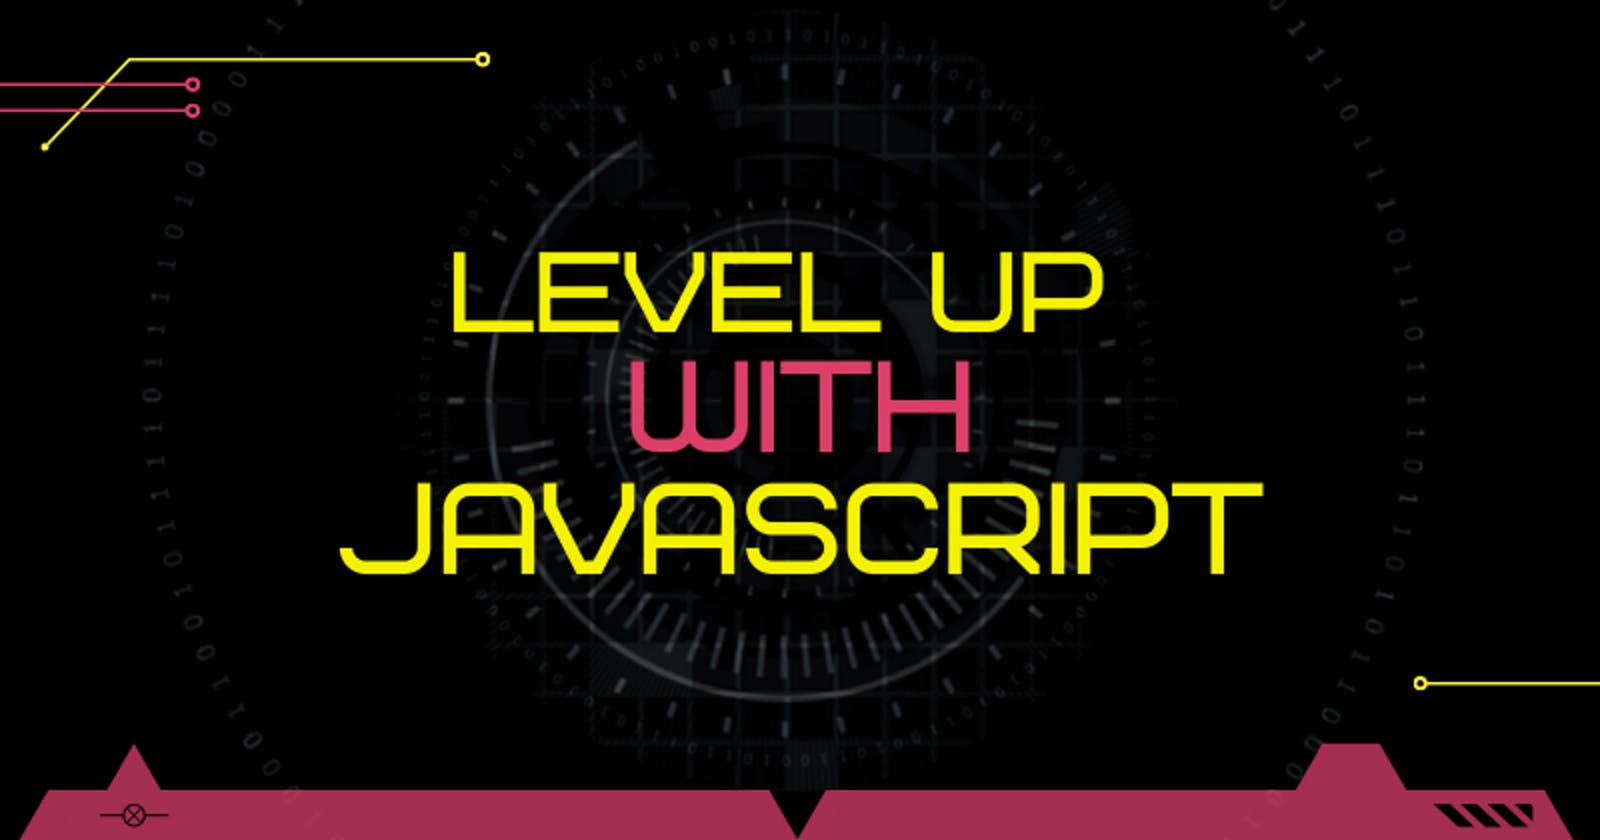 LEVEL UP with JavaScript! LVL 8